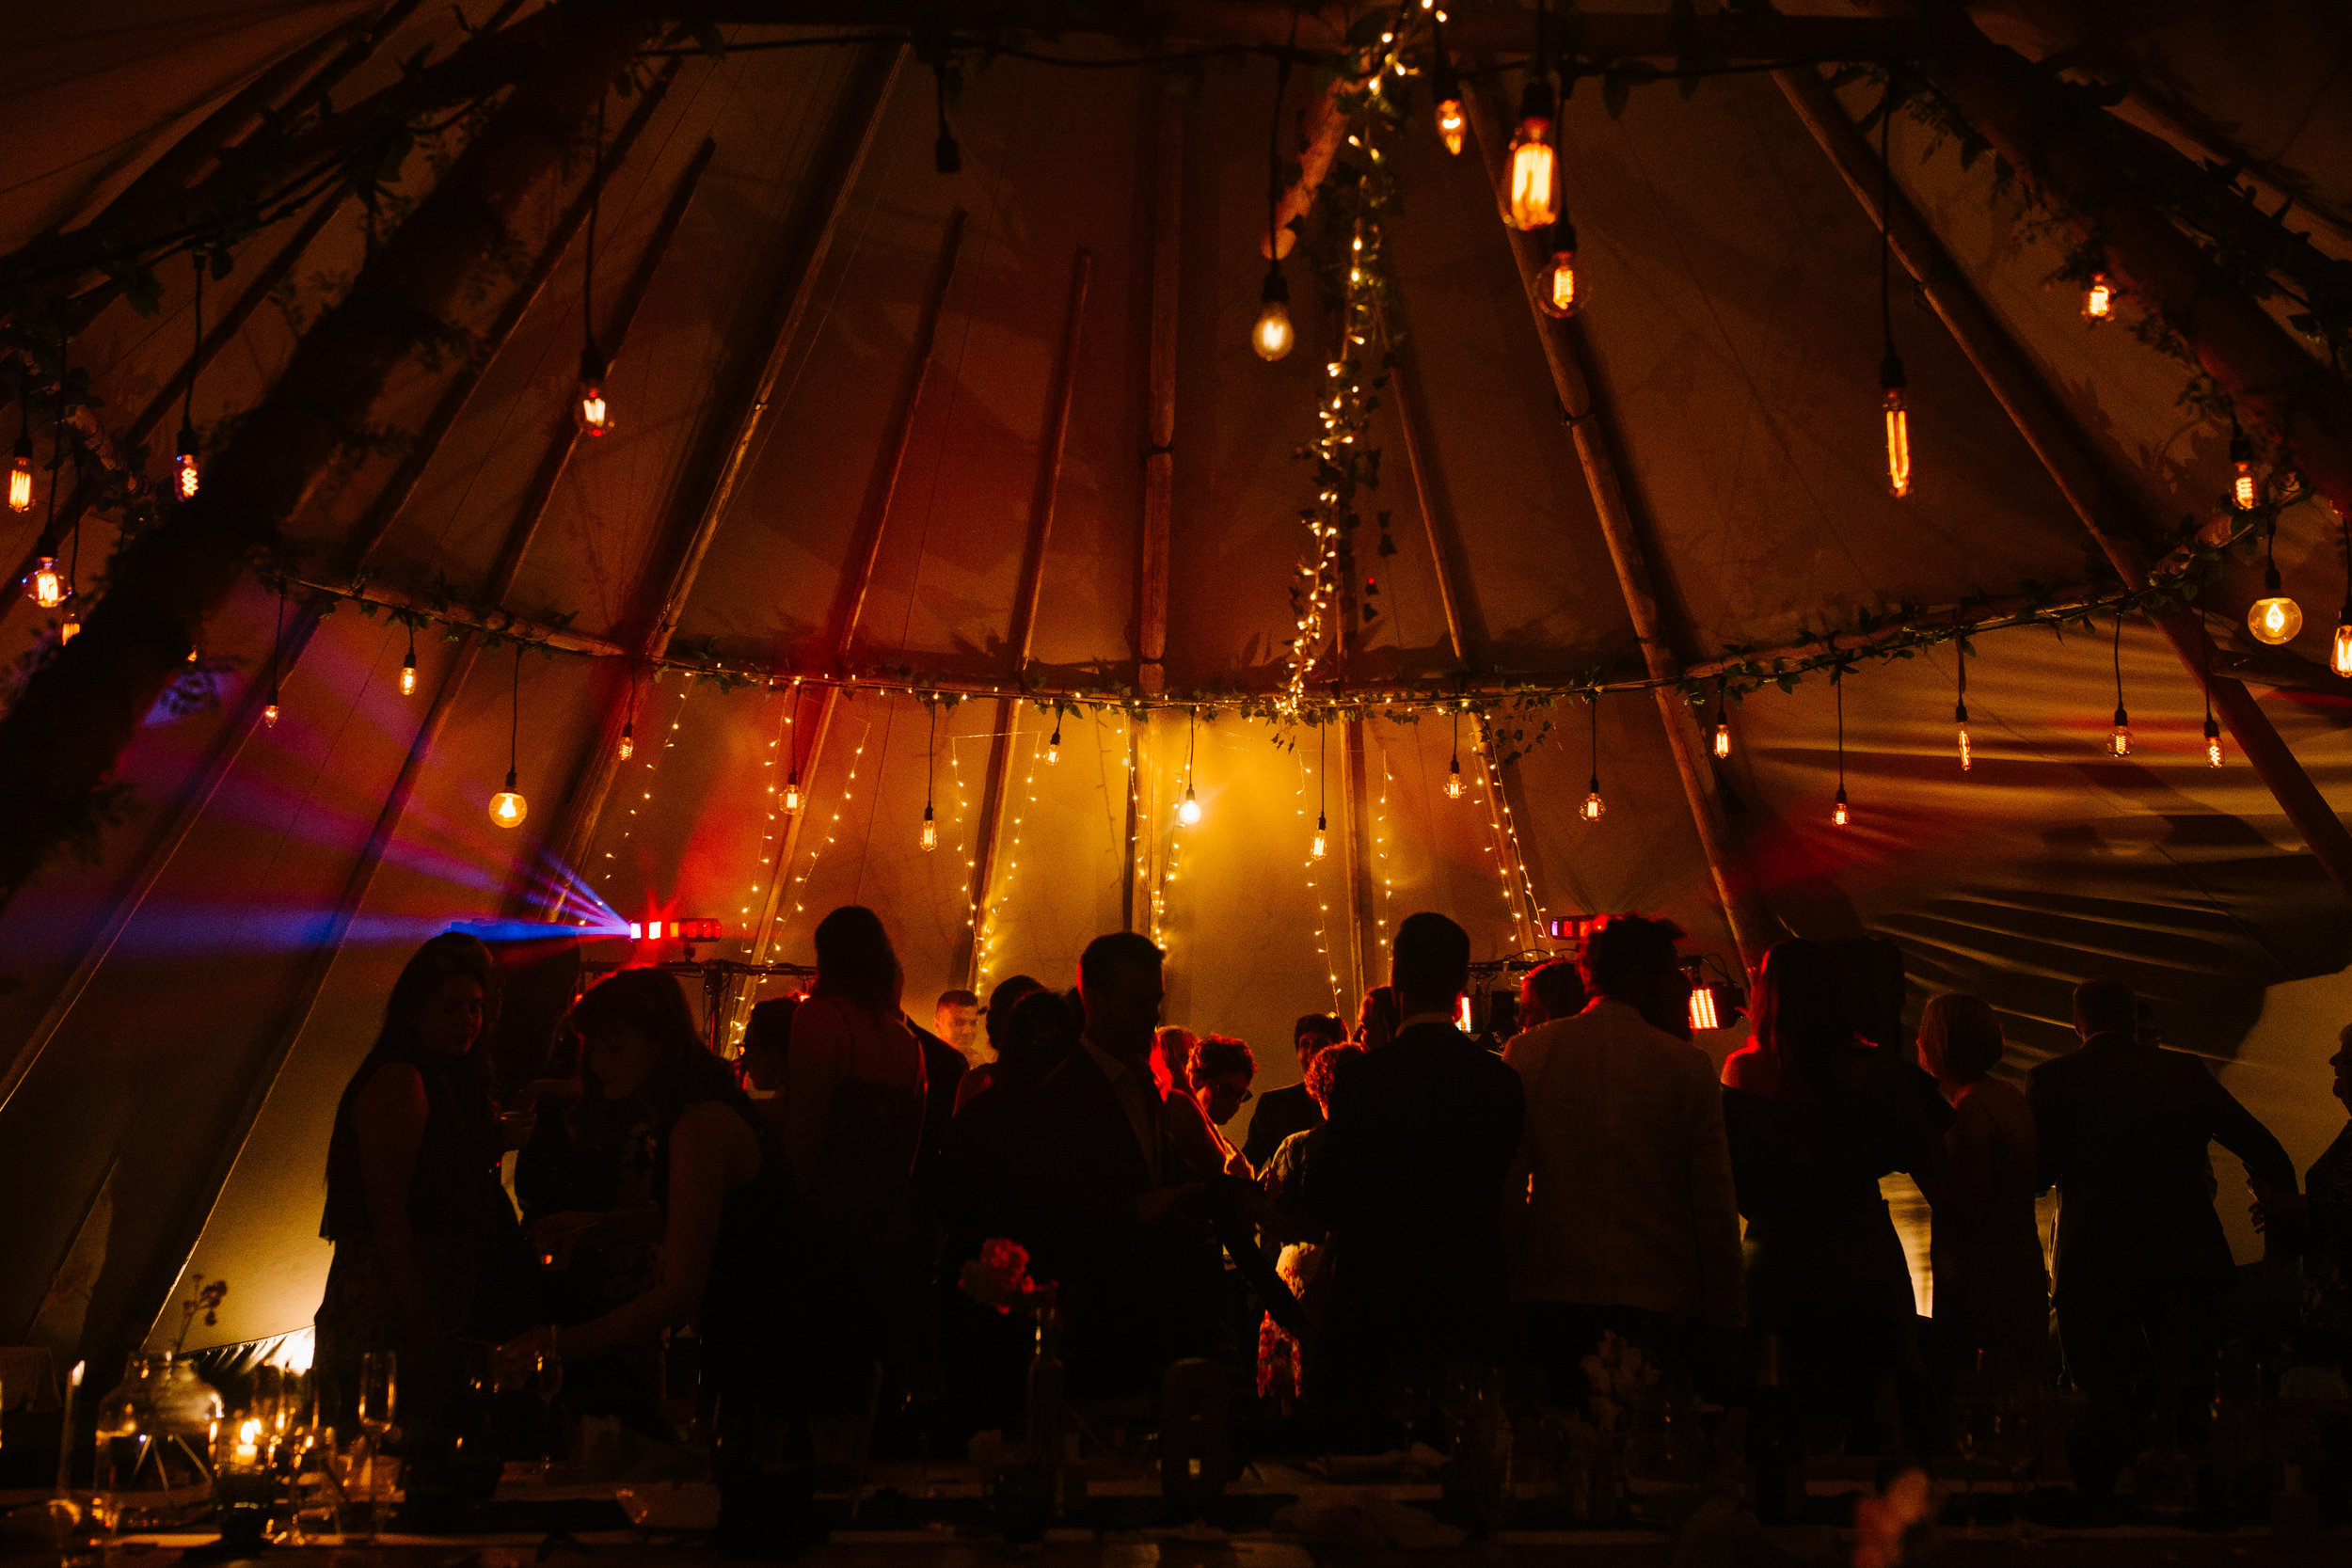 atmospheric shot of the tipi and the dance floor at night time